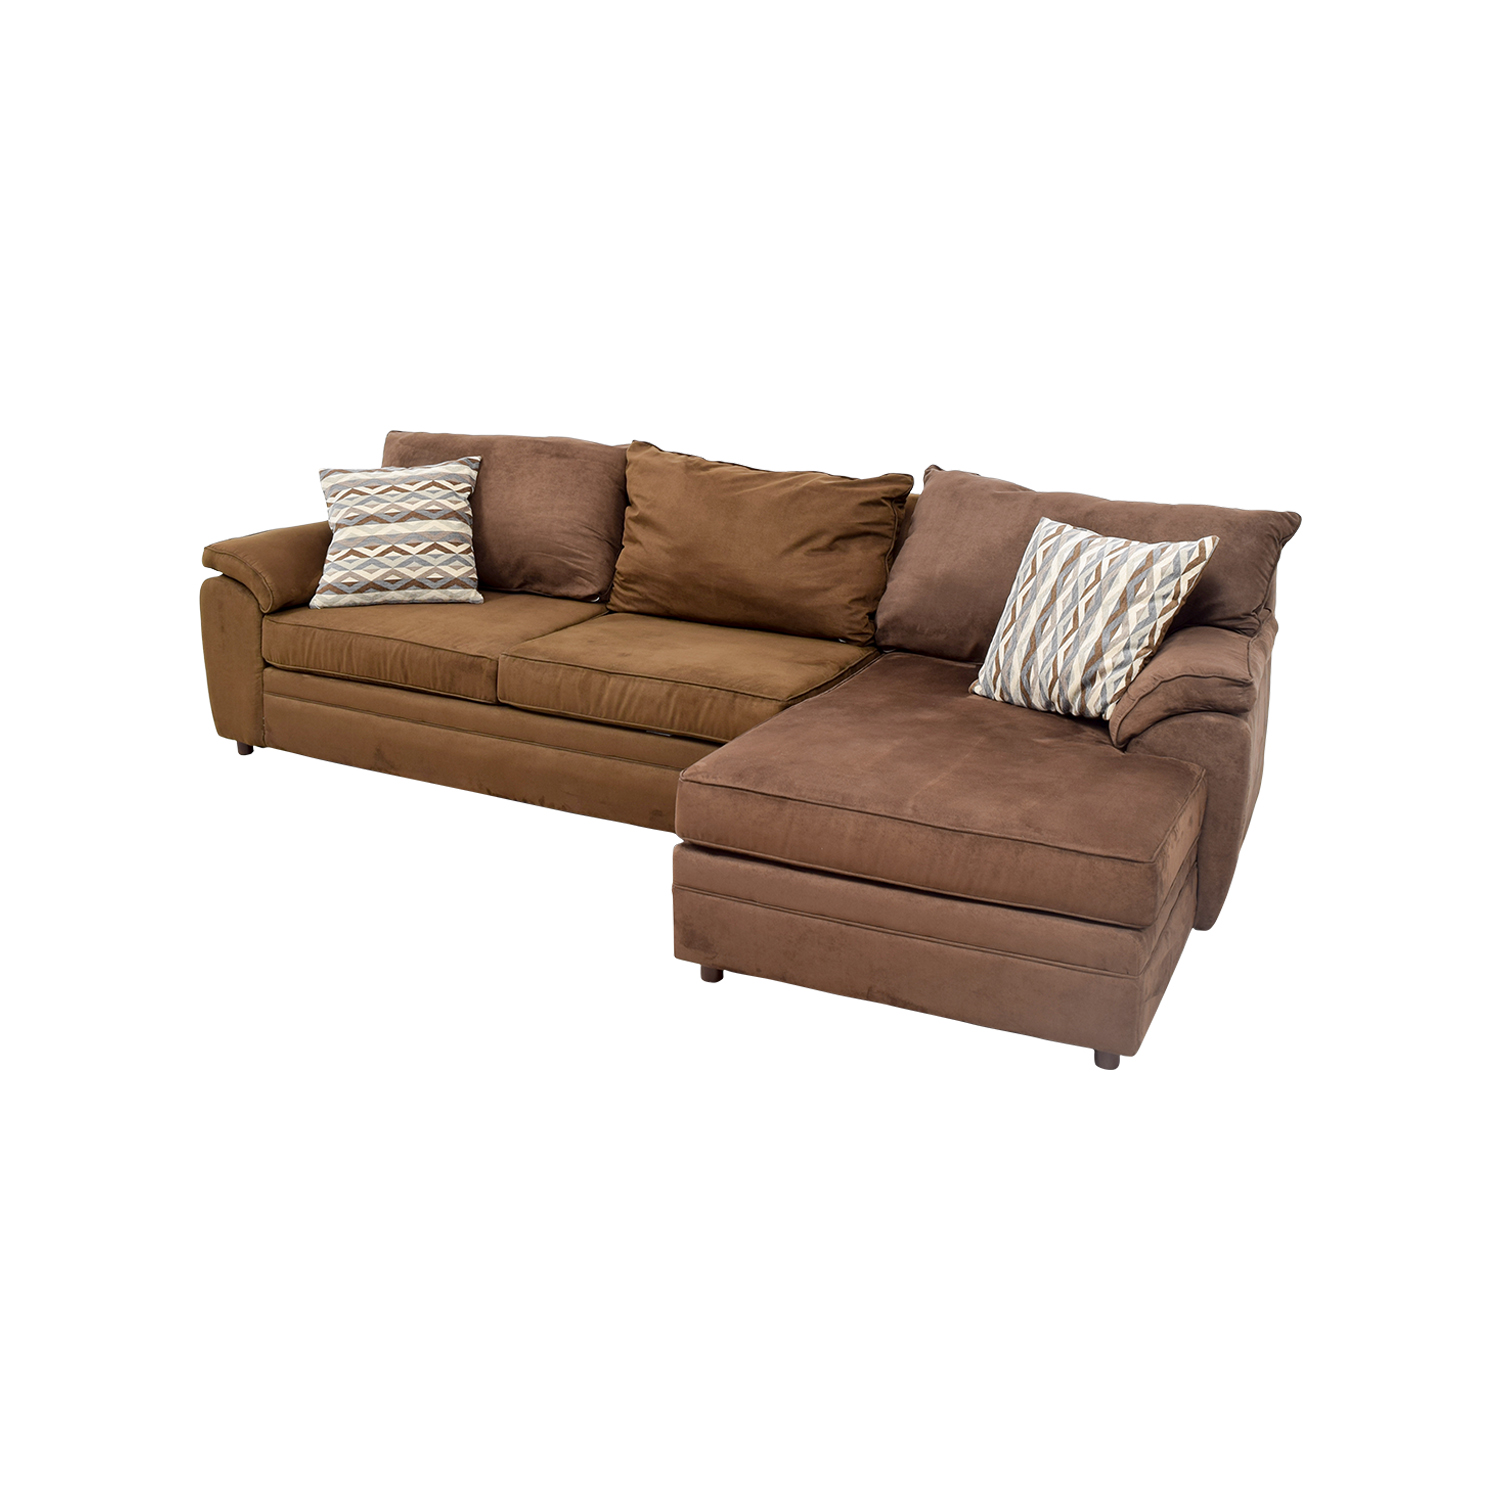 46 off bob 39 s furniture bob 39 s furniture brown chaise